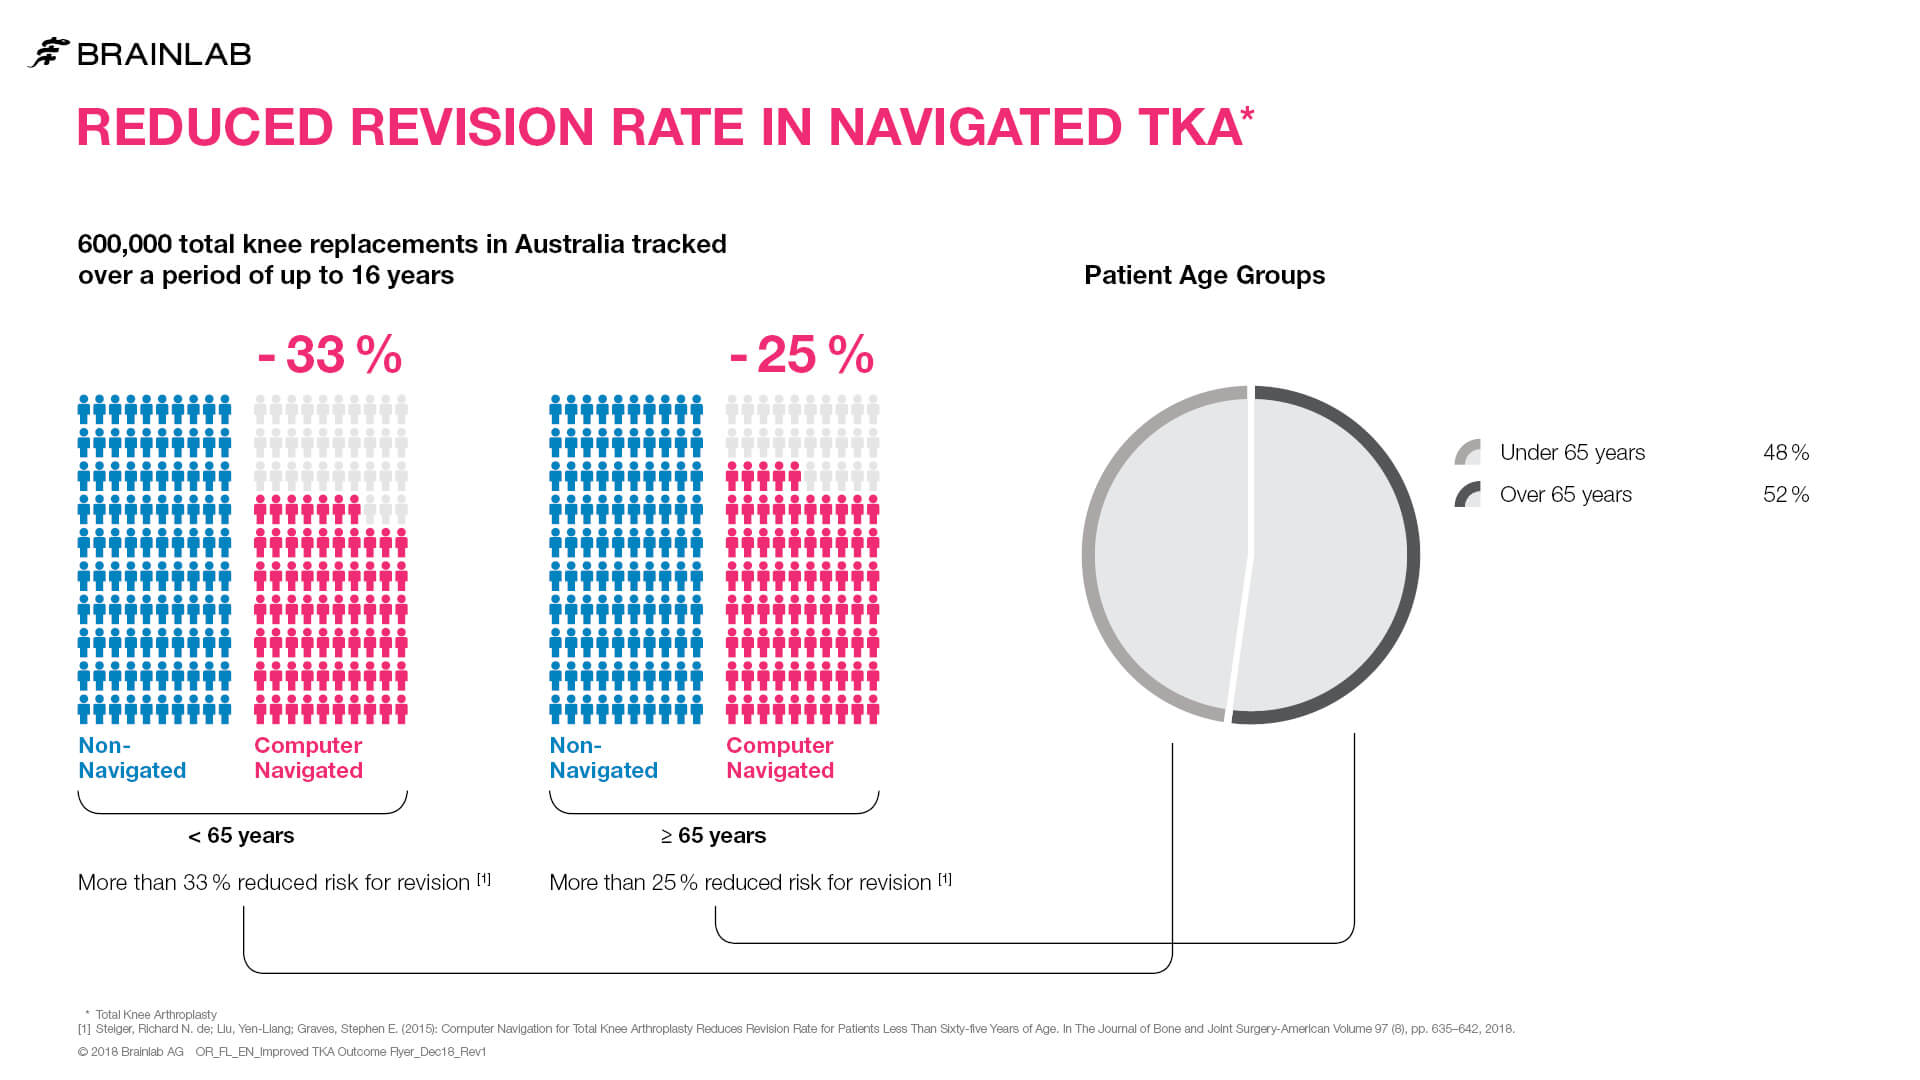 Reduced Revision Rate in Navigated TKA